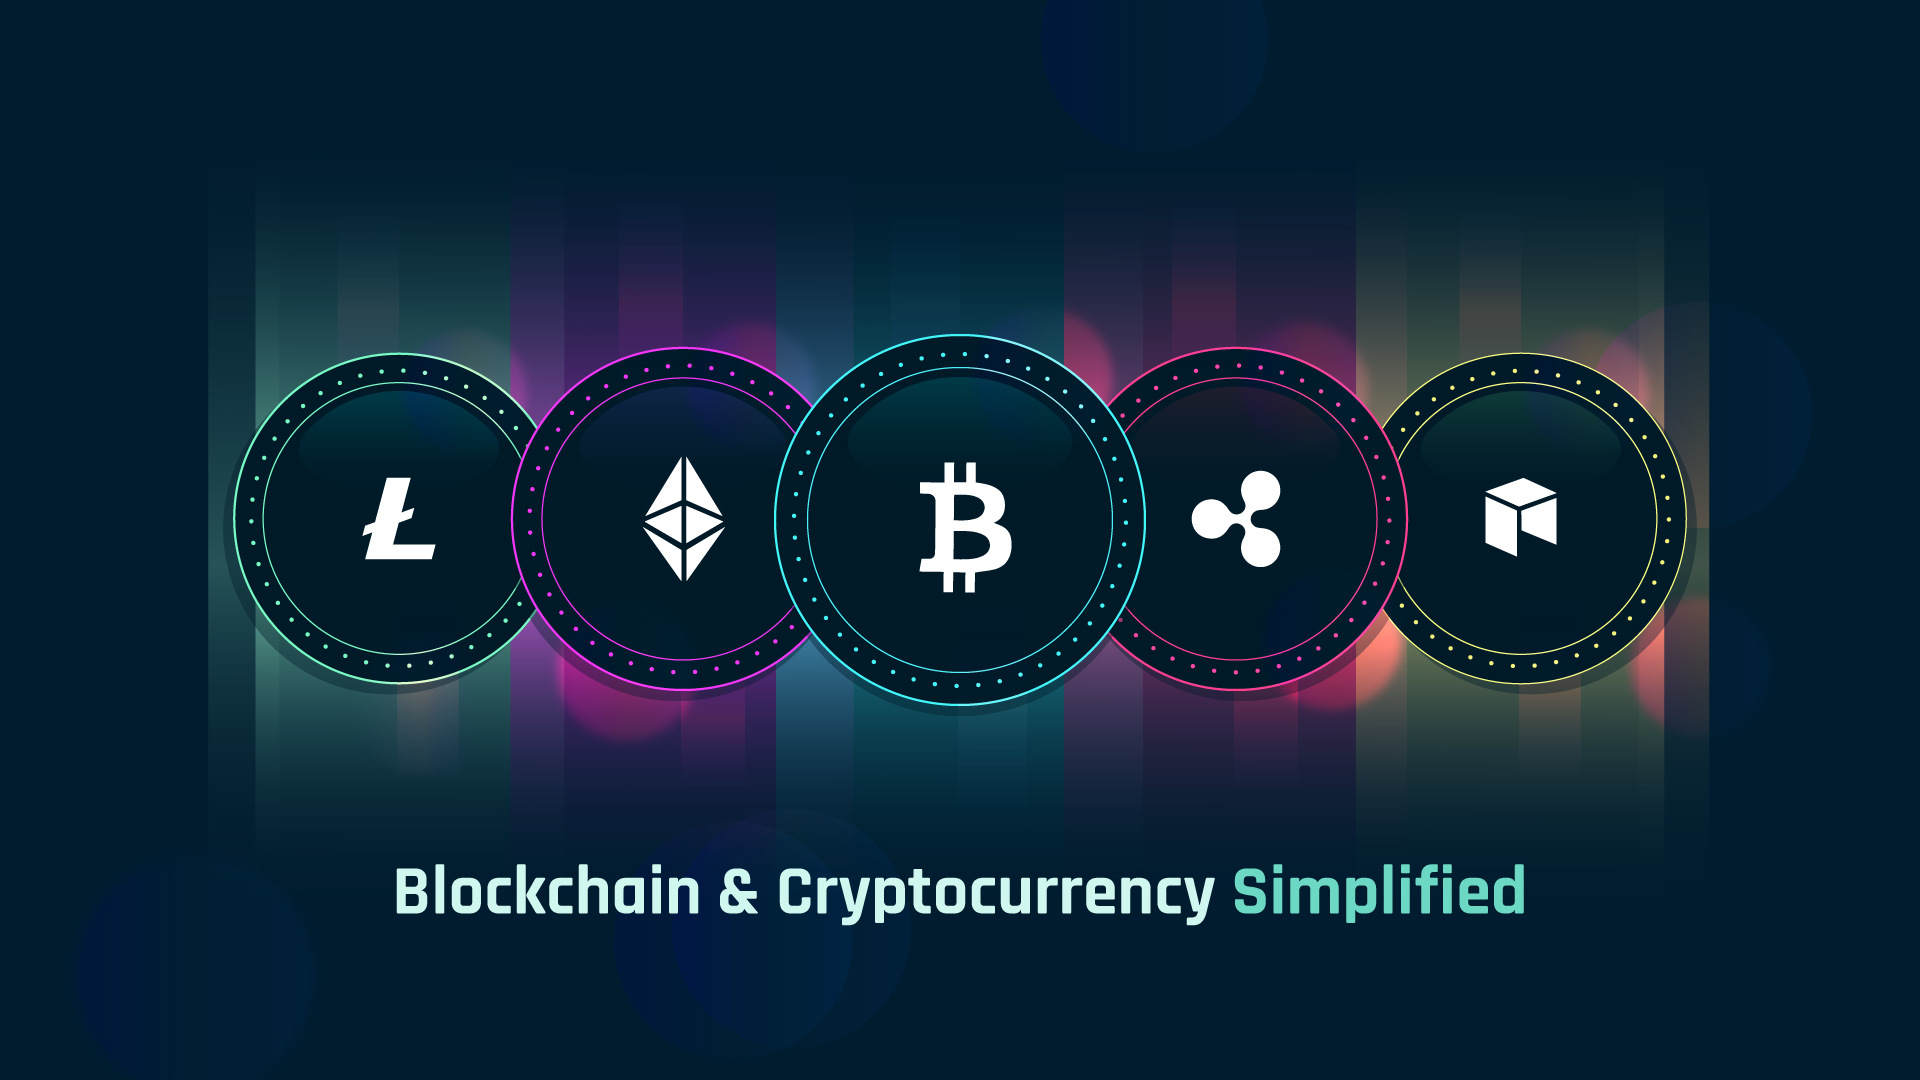 Block chain and cryptocurrency simplified using explainer video